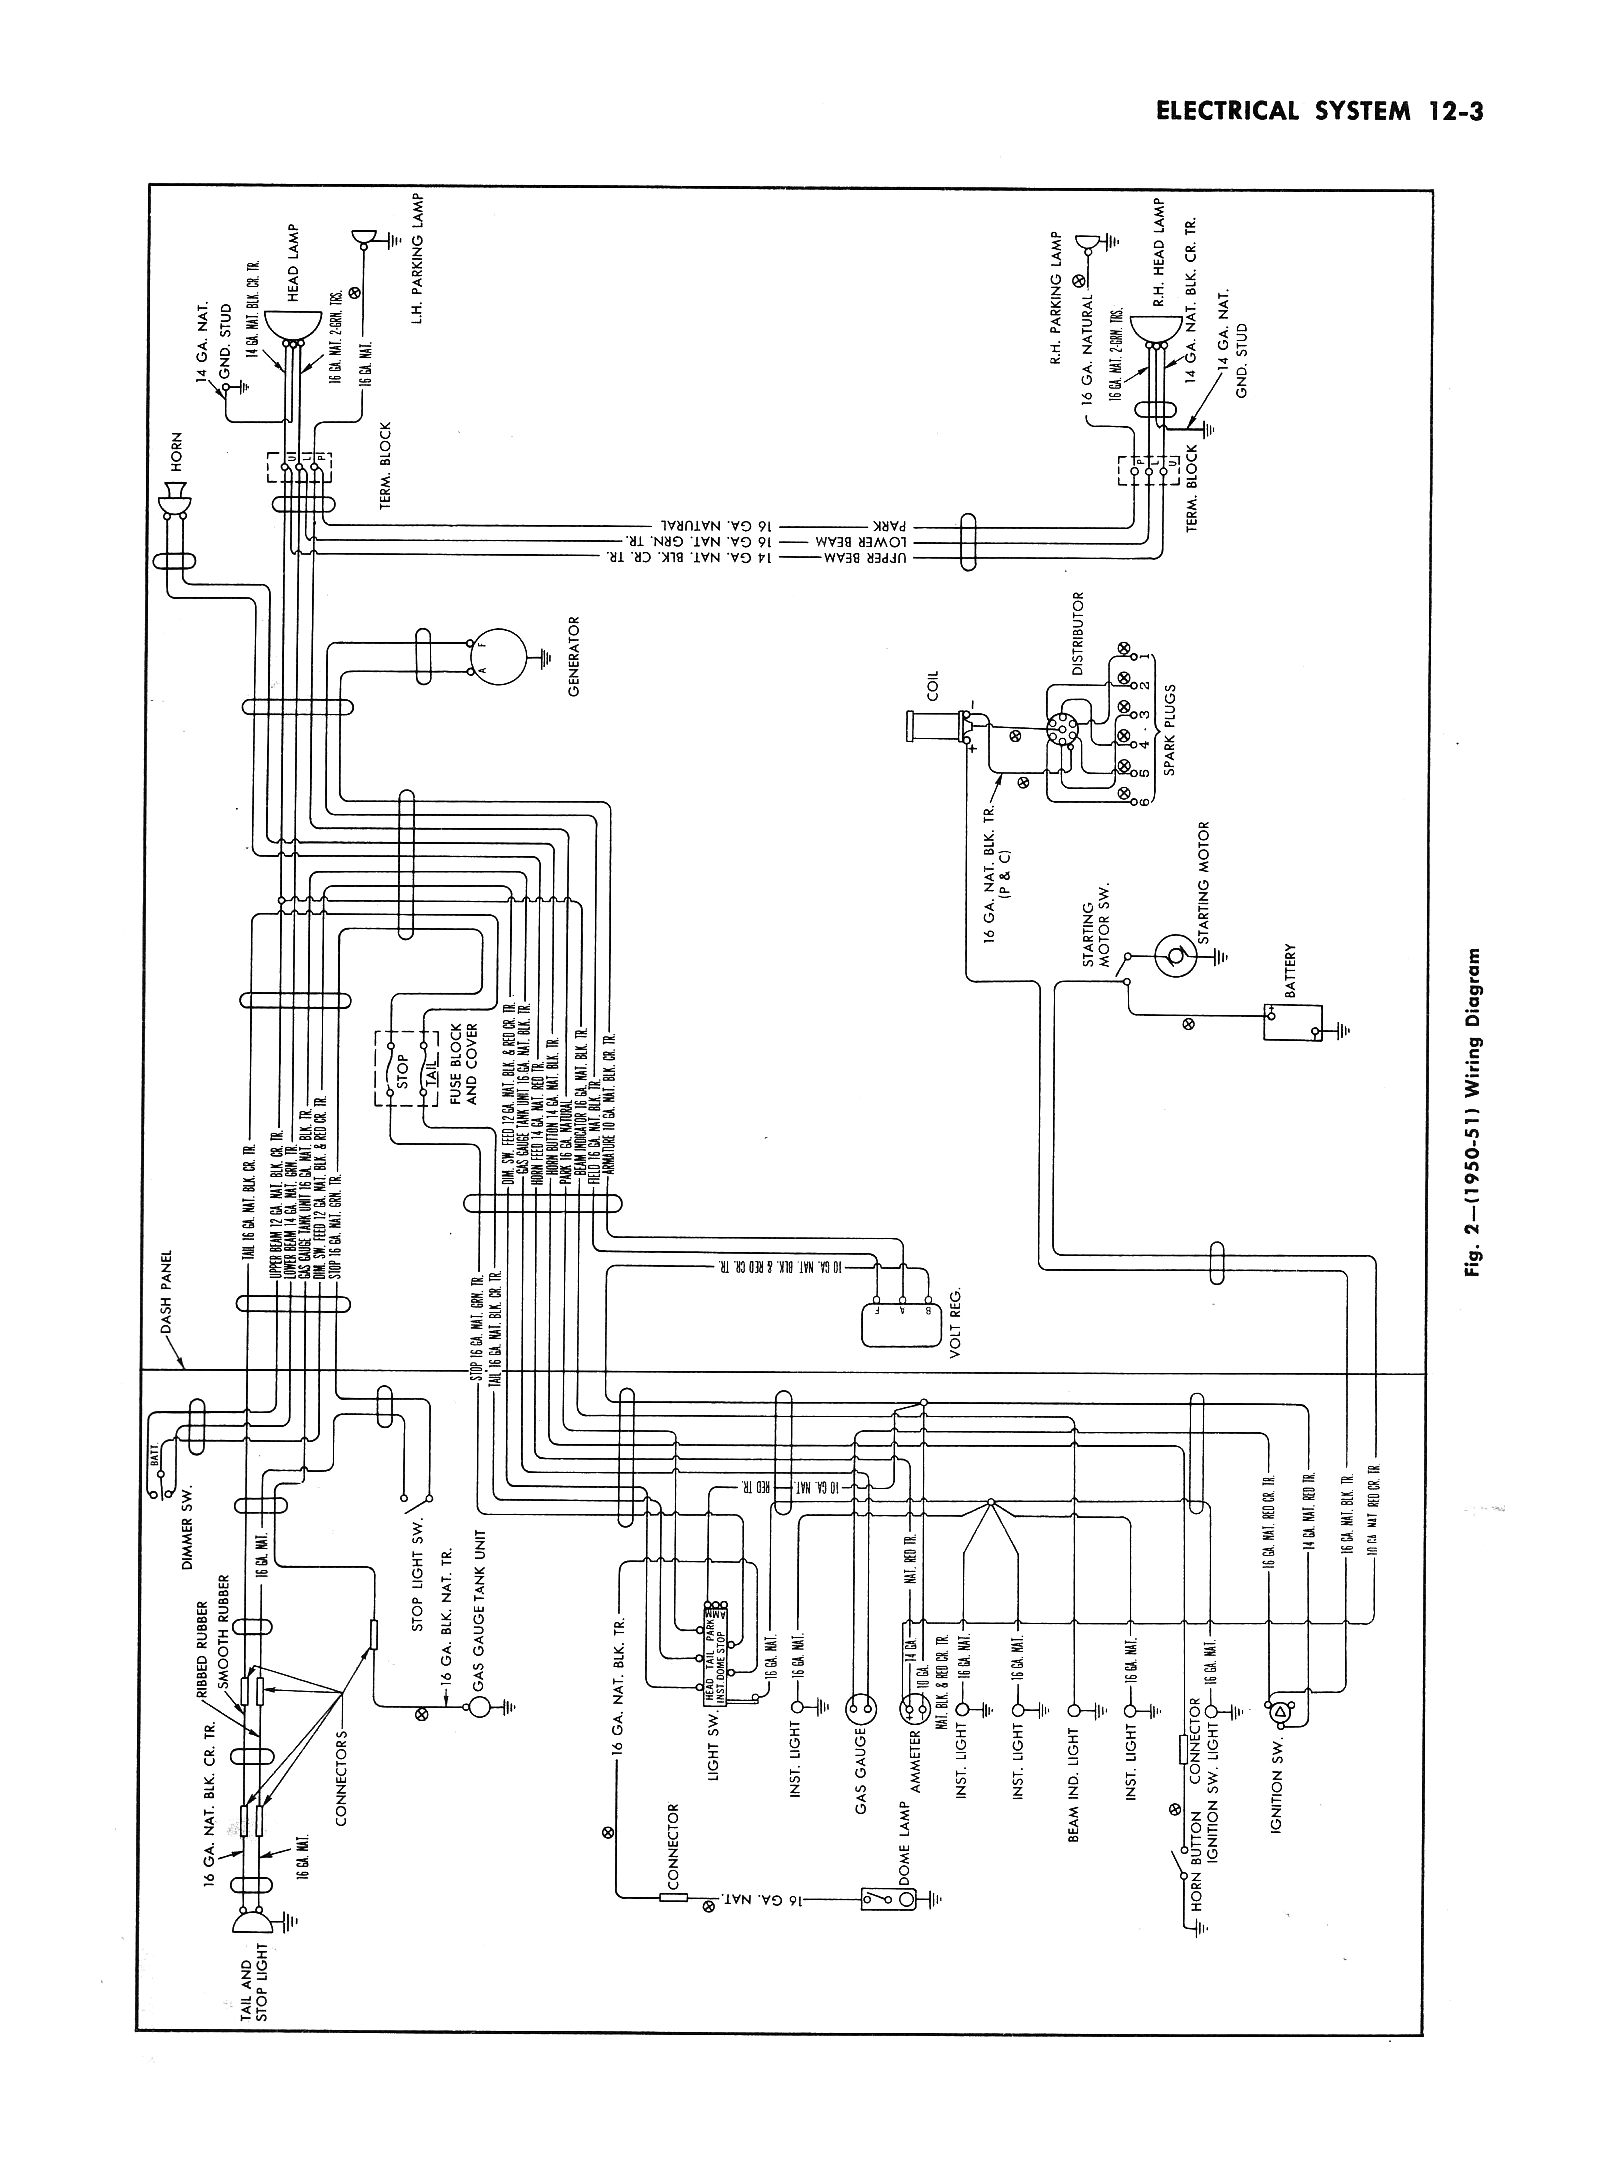 51ctsm1203 1949 chevy pickup wiring diagram on 1949 download wirning diagrams 89 chevy truck ignition switch wiring diagram at gsmx.co